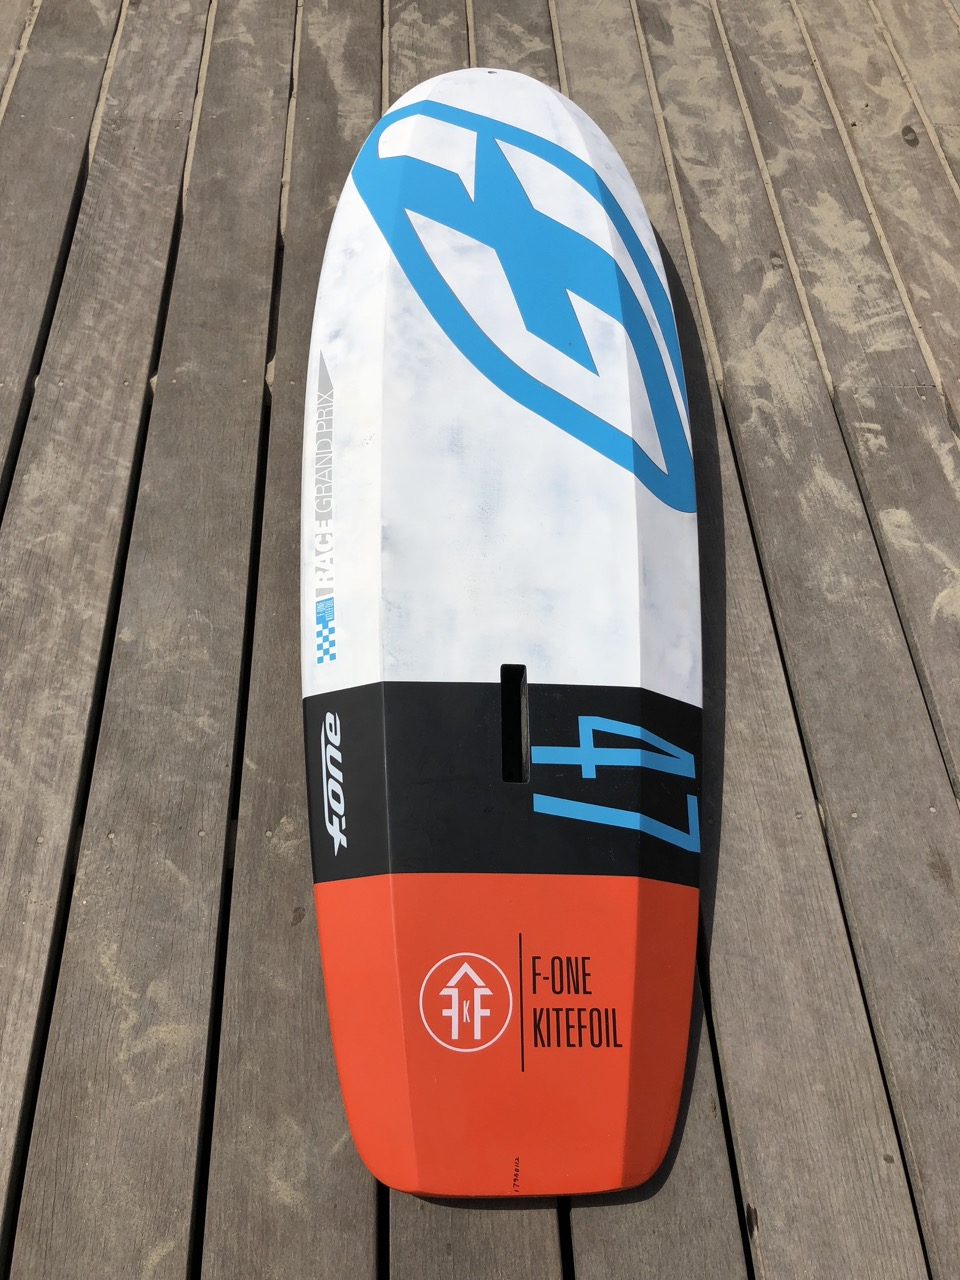 F-One hydrofoil 47 Carbon board Img_5911